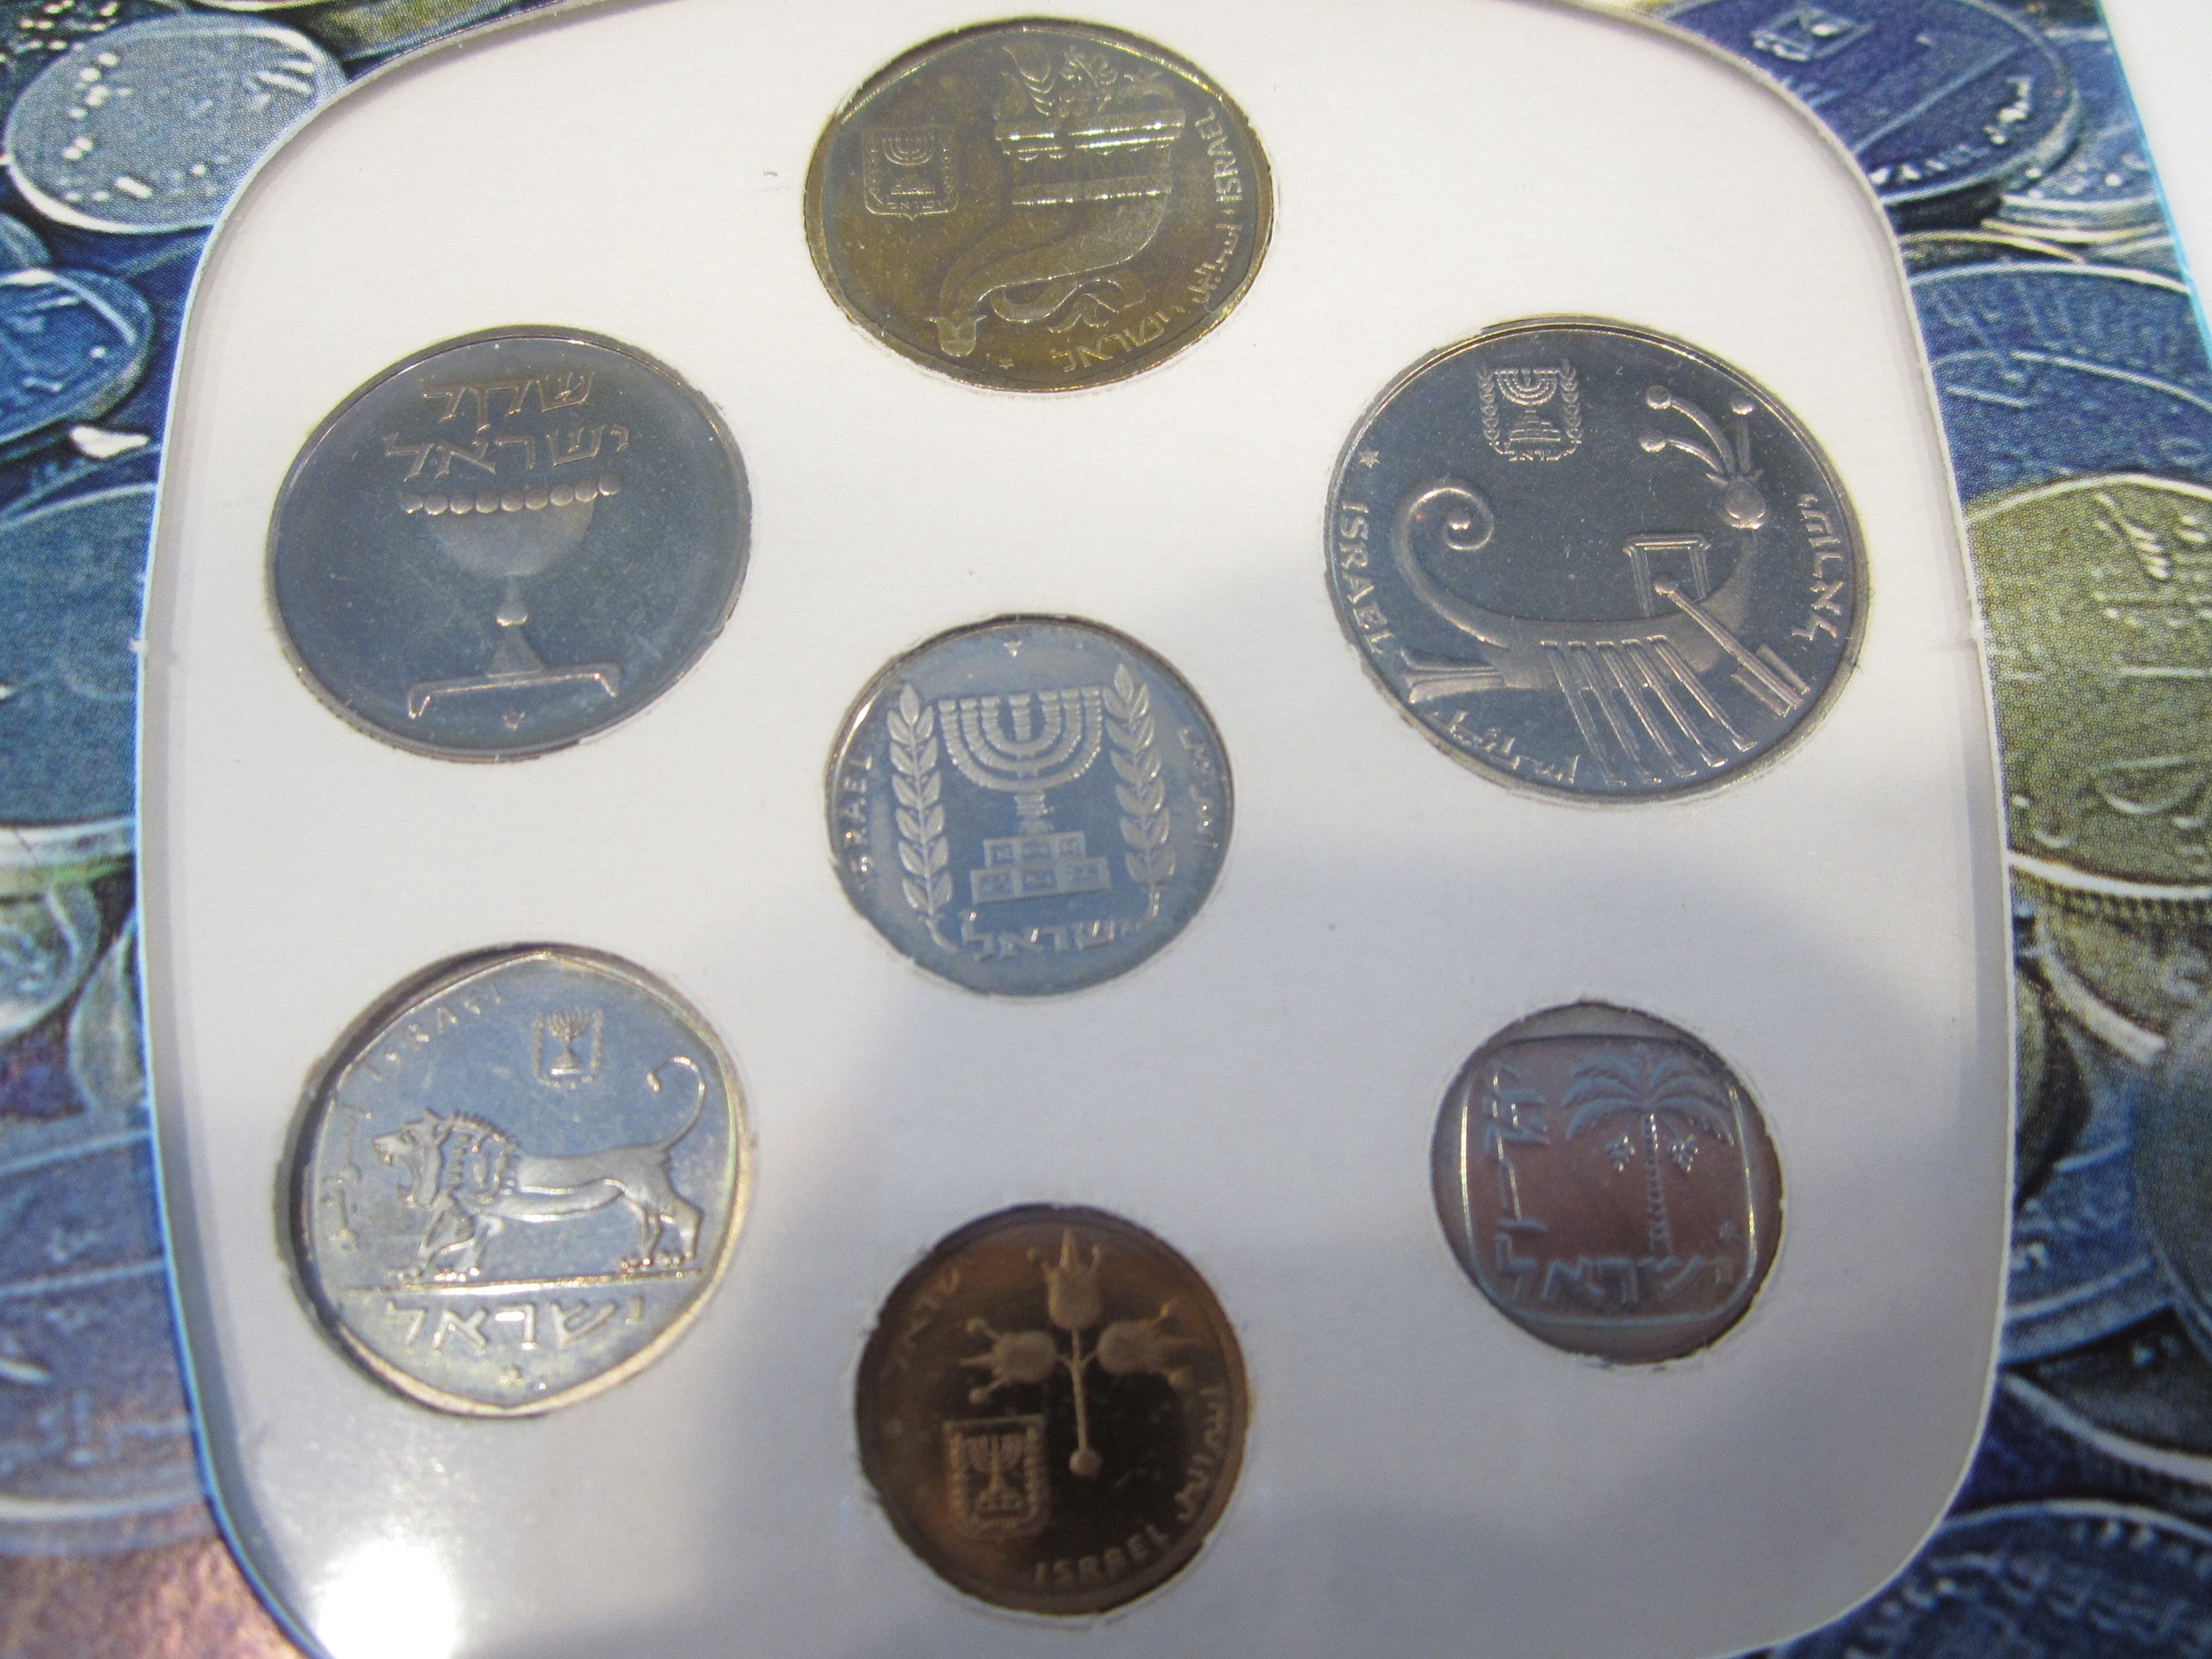 Mint Set Israel Mint Set 1983 Israel S 35th Anniversary Collectible Foreign Coin 7 Coin Set Piefort Mint